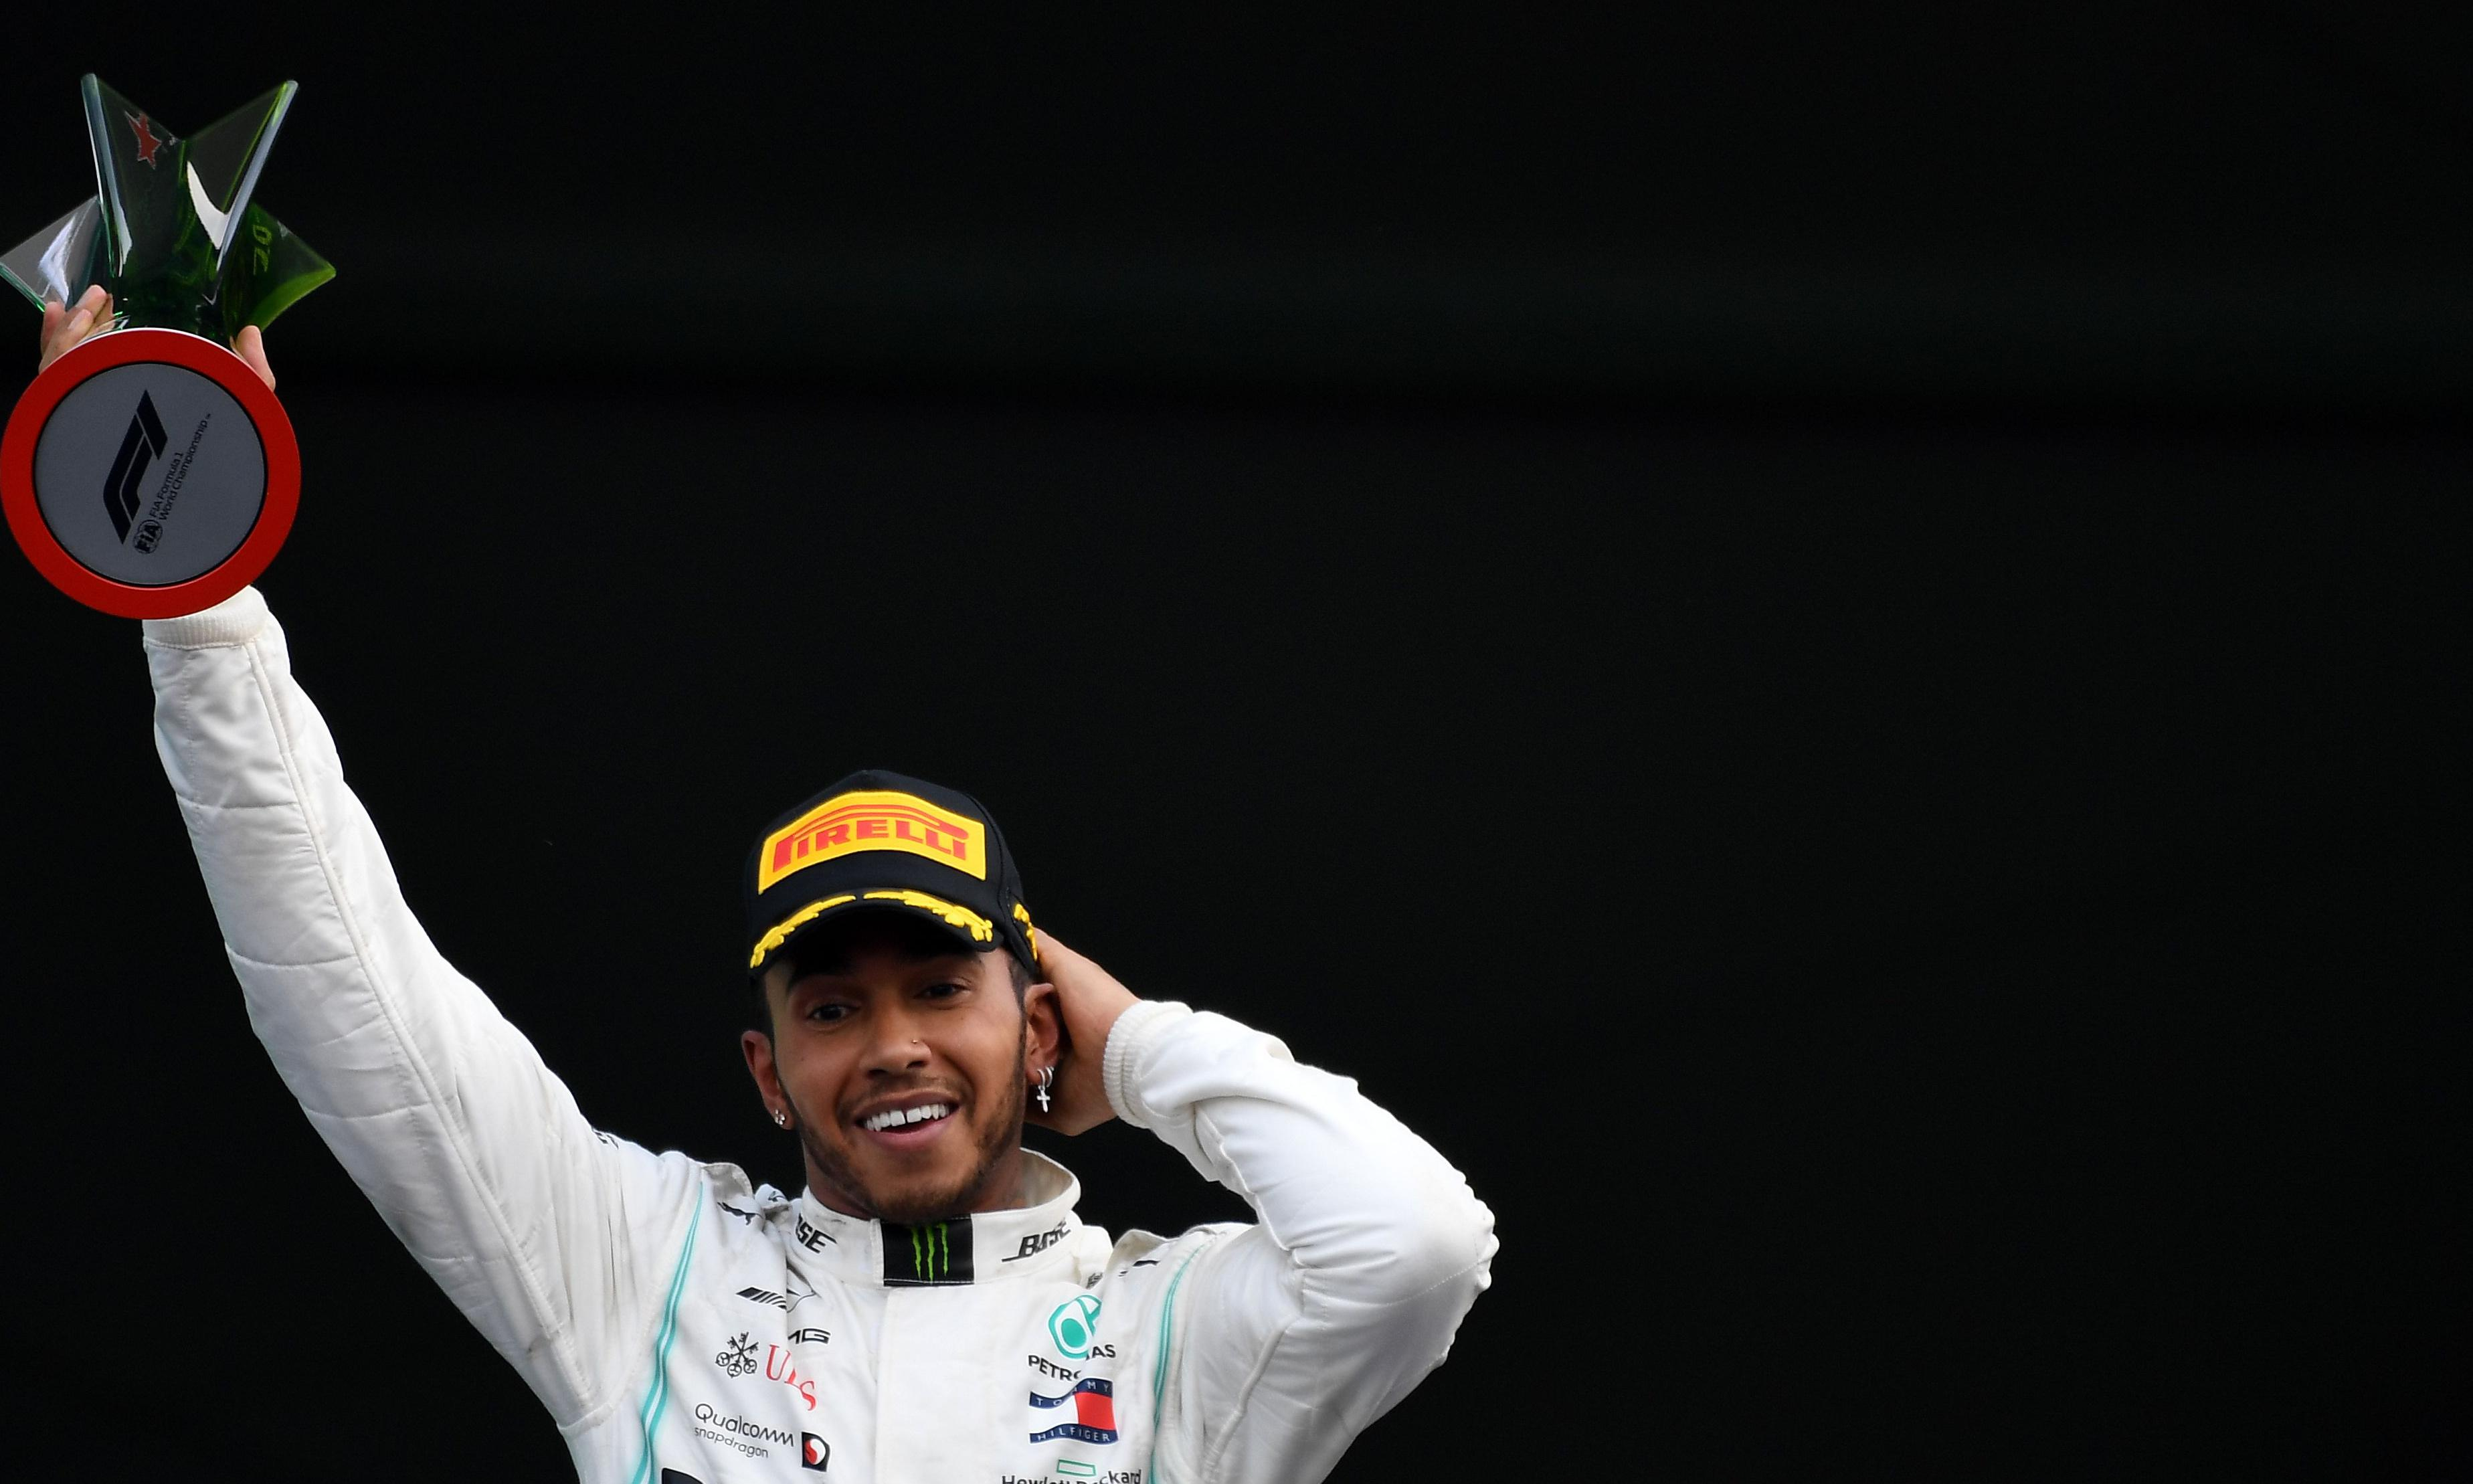 F1 Mexican Grand Prix: five things we learned at Hermanos Rodríguez